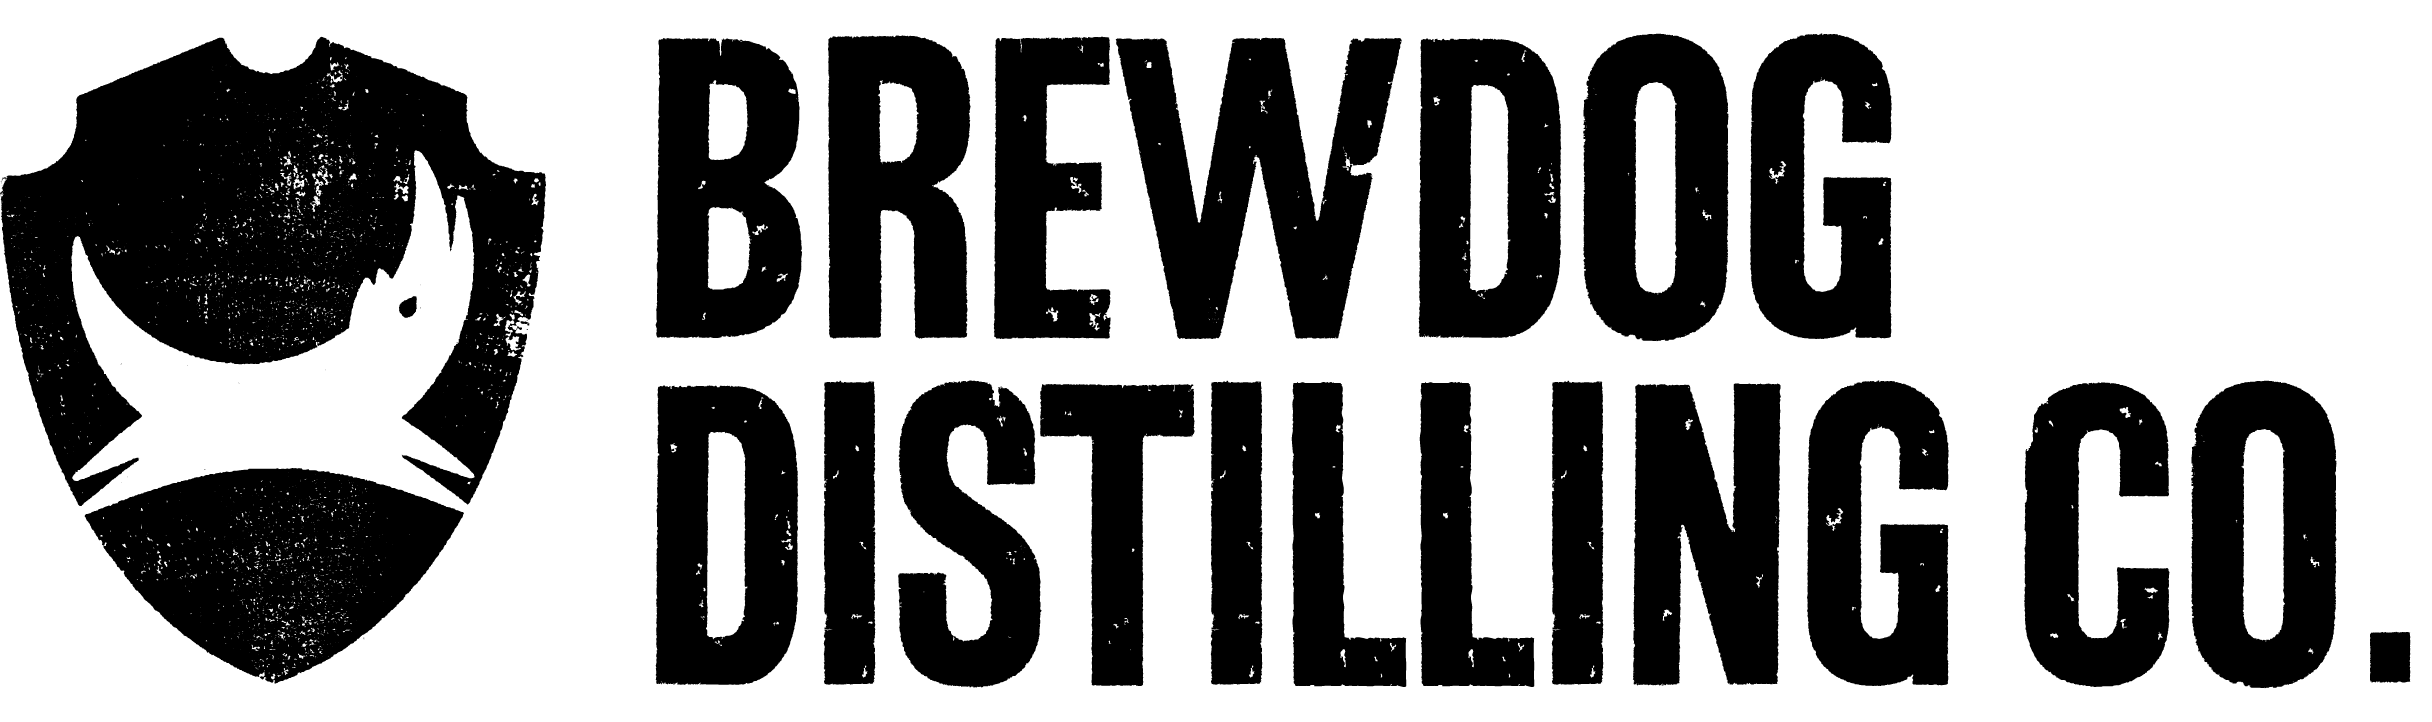 BREWDOG DISTILLING CO. LOGO_OFF PACK_LEFT ALIGNED_Black.png